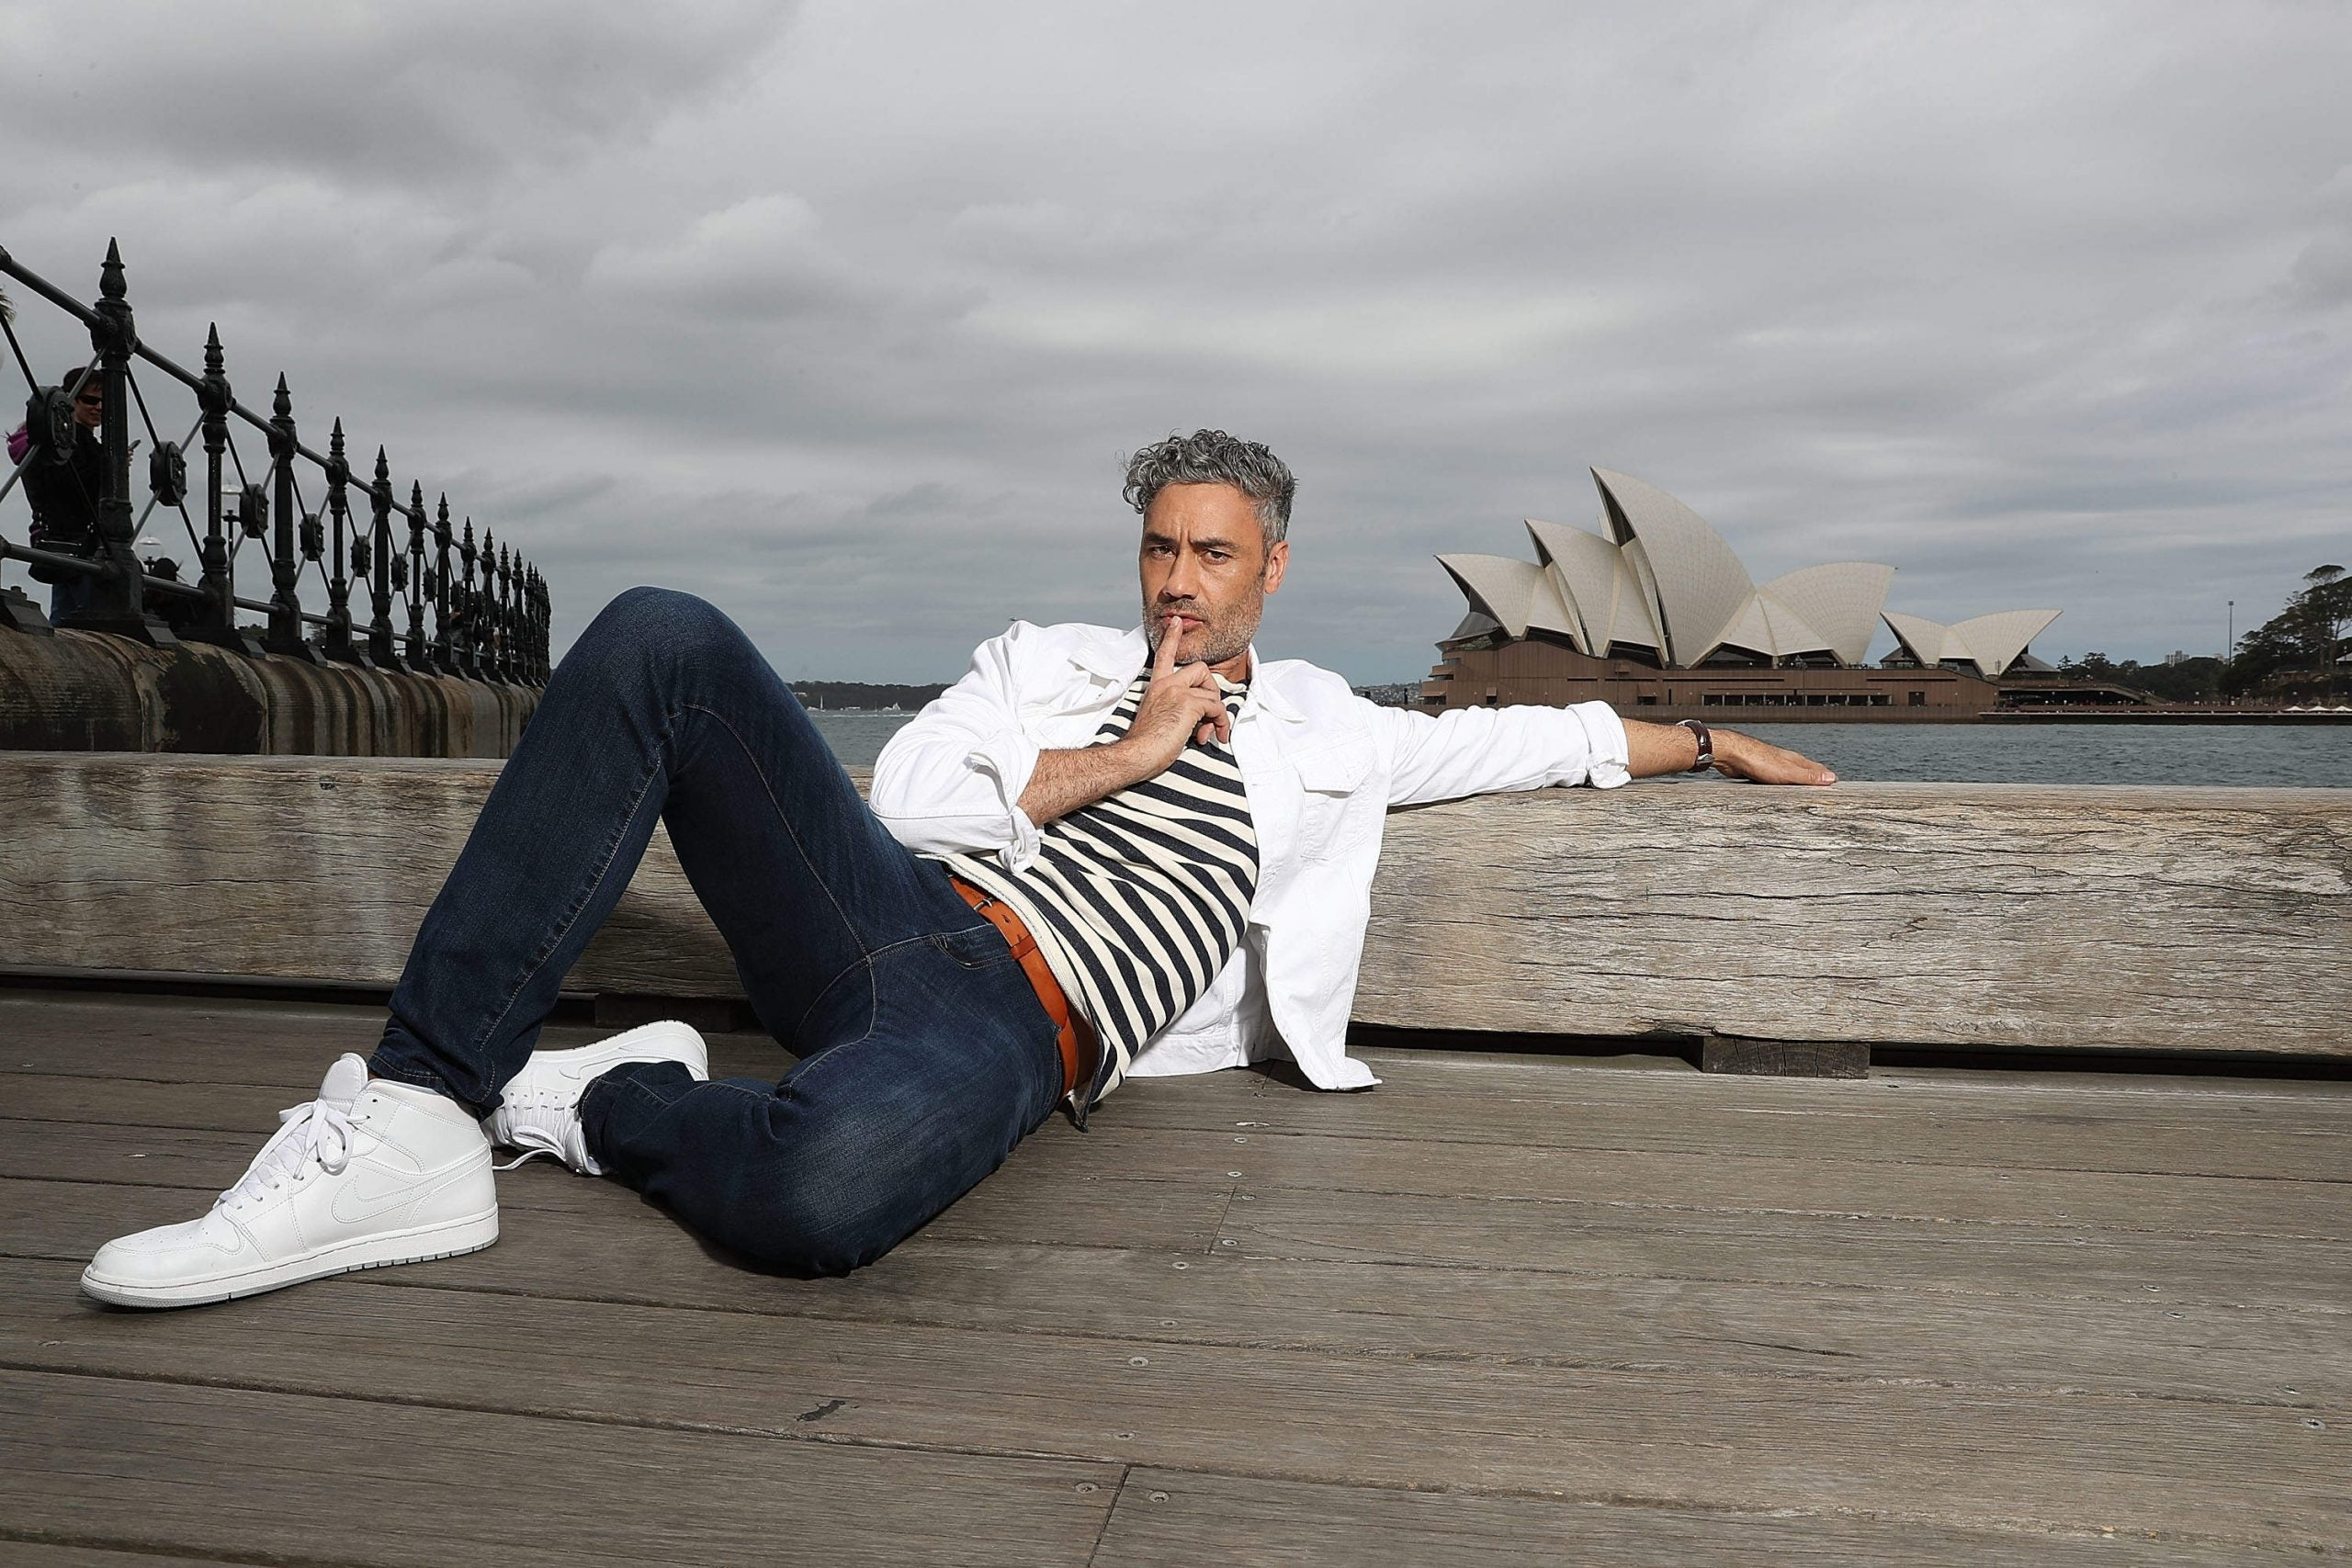 Taika Waititi: The Kiwi director's path from low budget indie to Marvel blockbuster